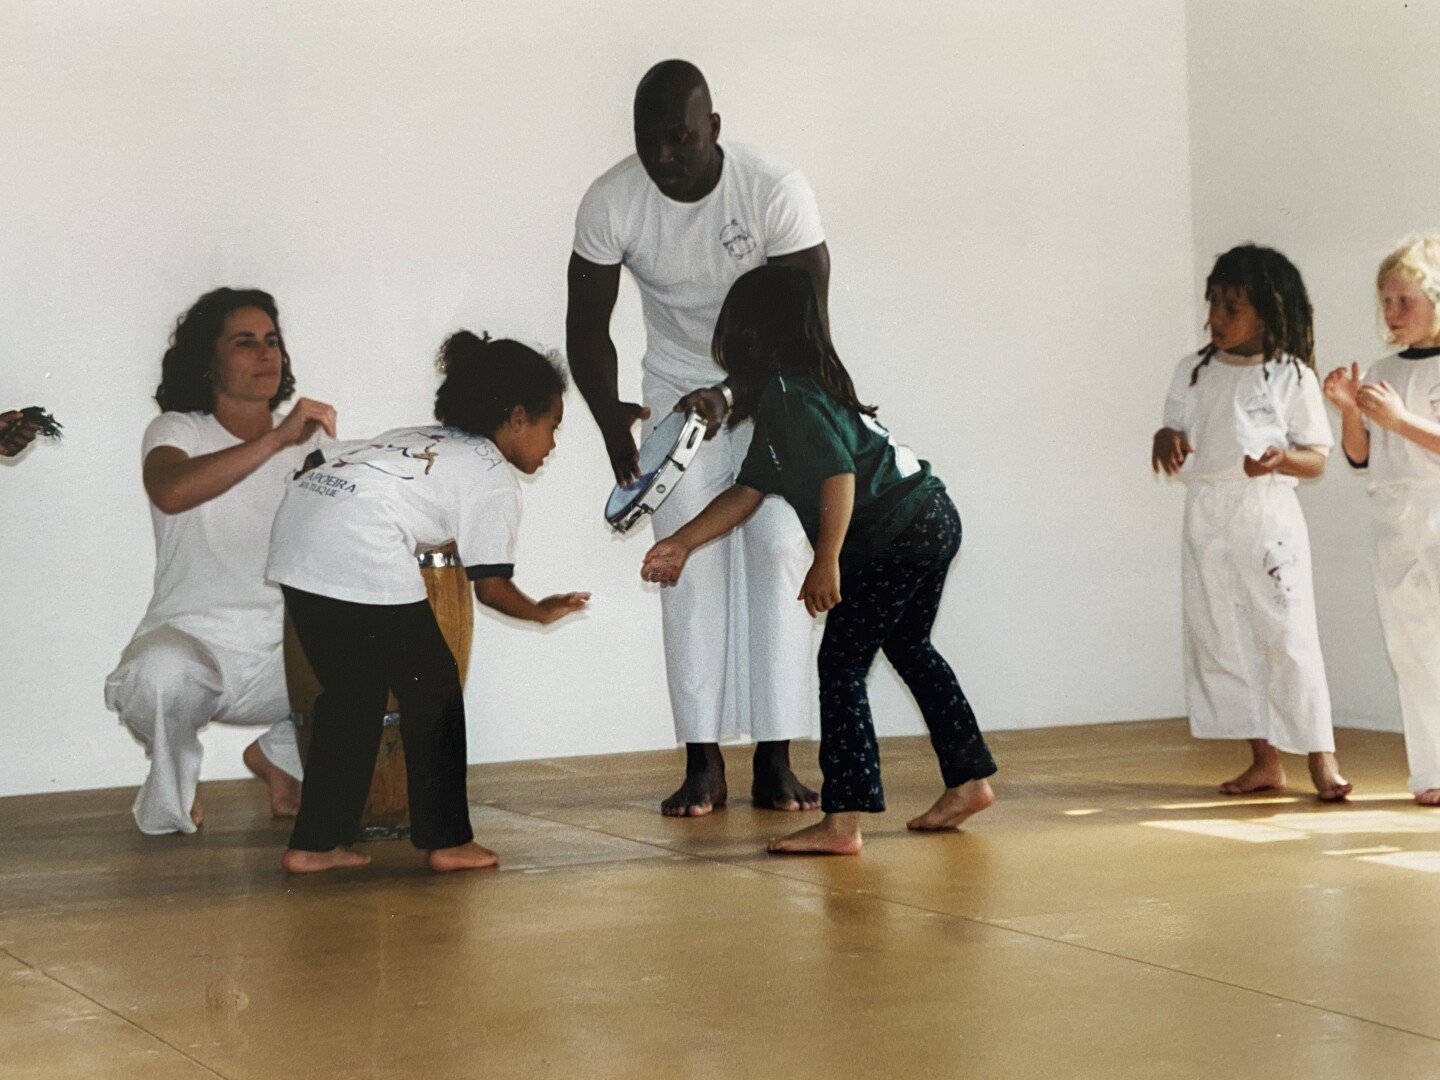 Lukaza and Kenja learn rituals of entering the capoeira roda with Author and Mestre Amen Santo at Brasil Brasil Cultural Center.